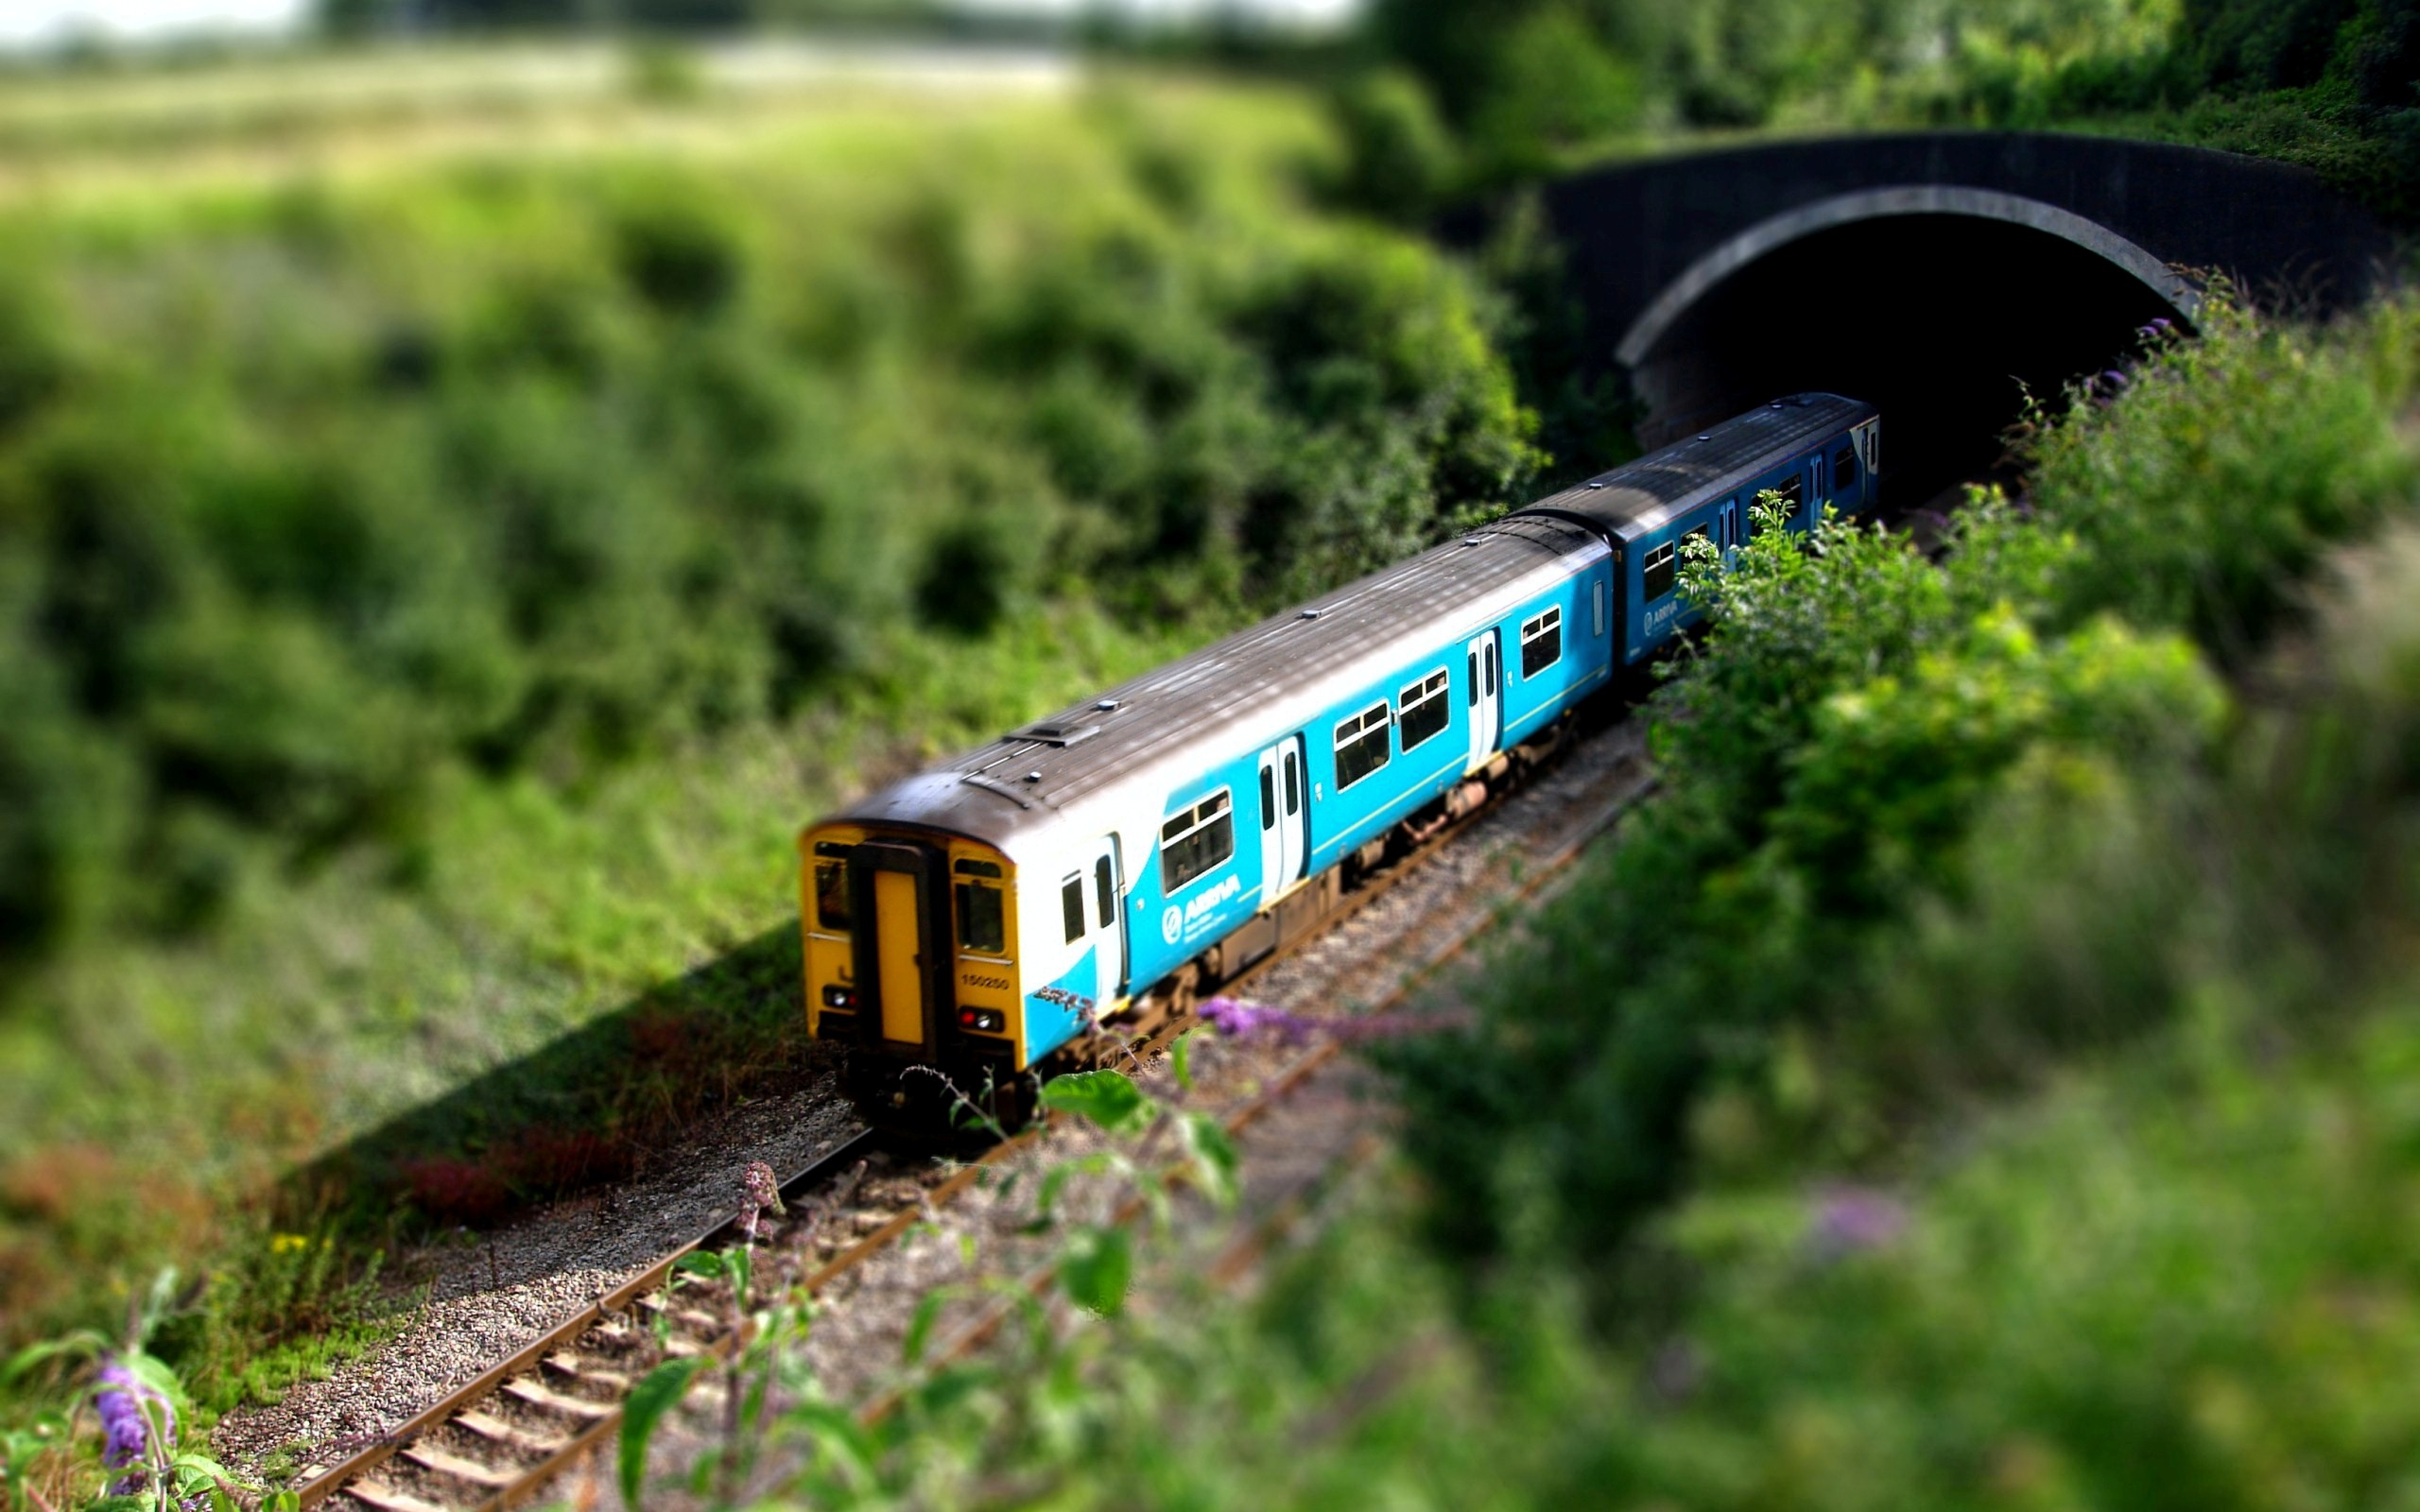 Train HD Wallpapers Images Pictures Photos Download 2560x1600